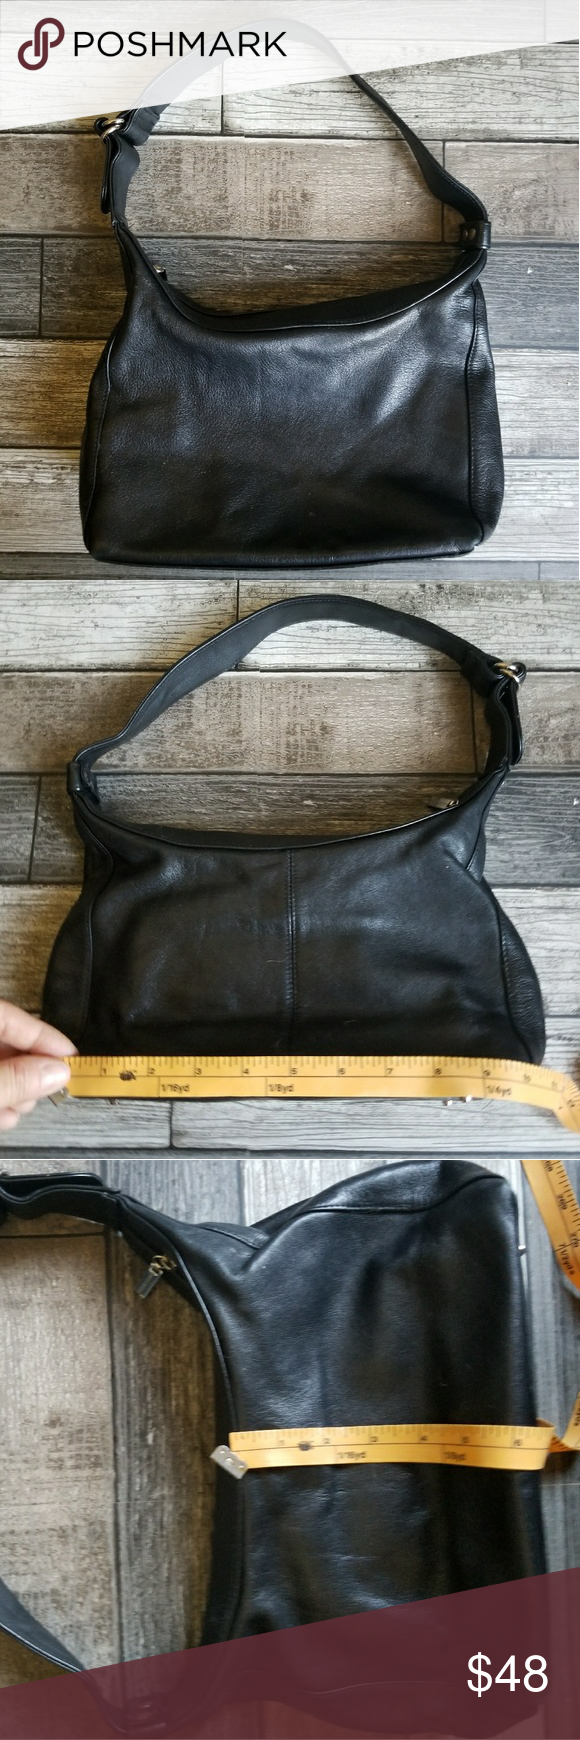 PELLE STUDIO (WILSON'S) black leather bag Black leather